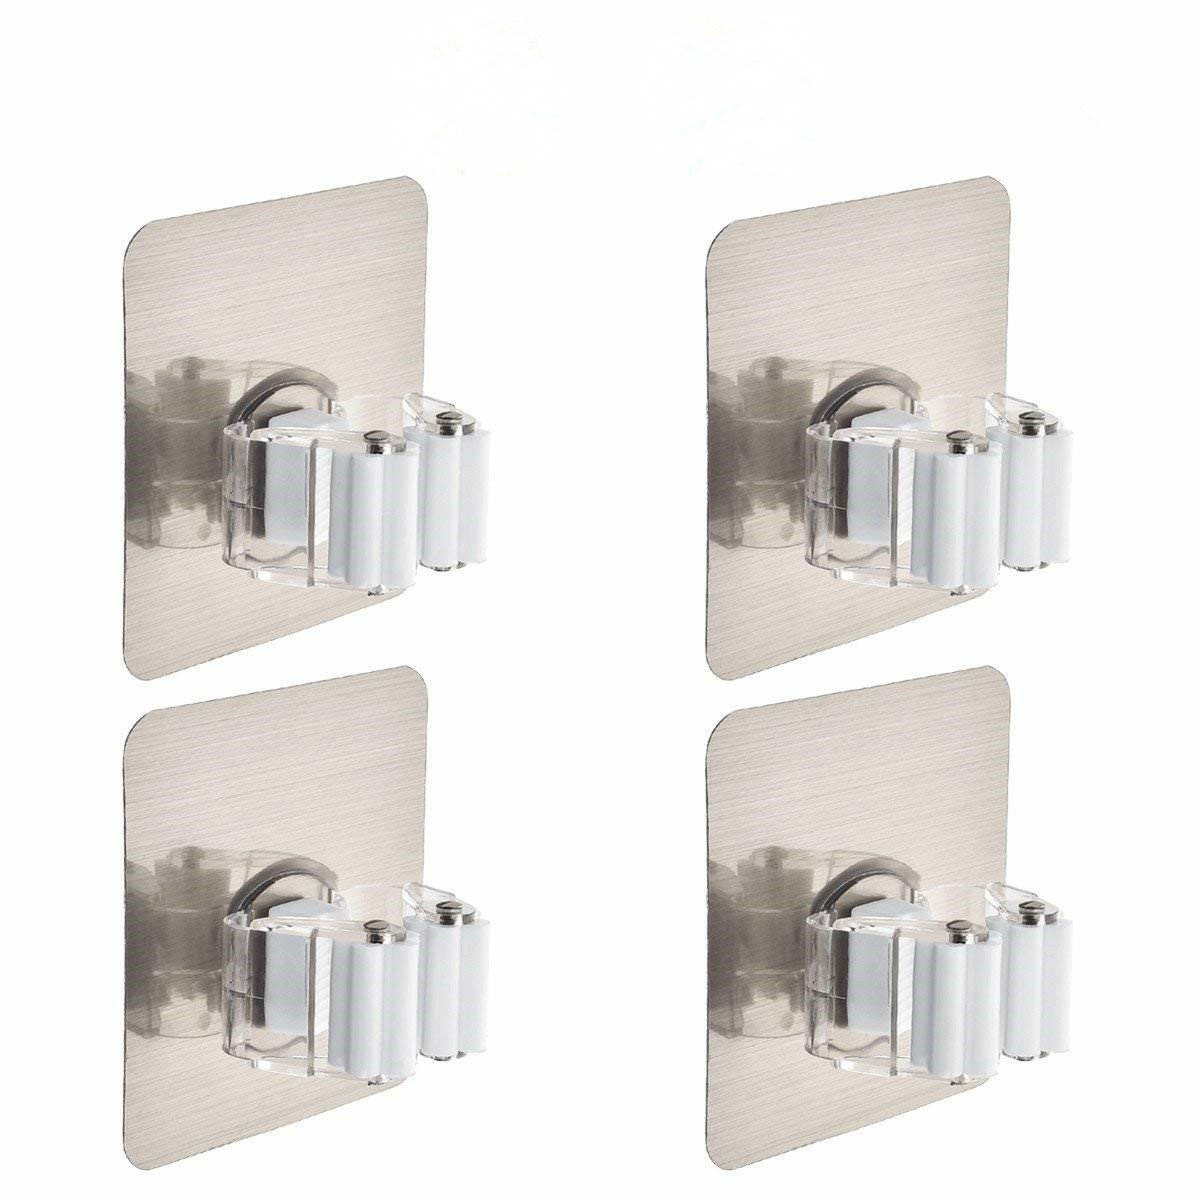 Mop Holder Idealco (4 Pack) Broom Hanger, Reusable Mop Broom Organizer Mop Rack Non-slip and Waterproof,Self Adhesive Wall Mounted Tool,Storage Rack Storage & Organization Super Adhesion for Your Home